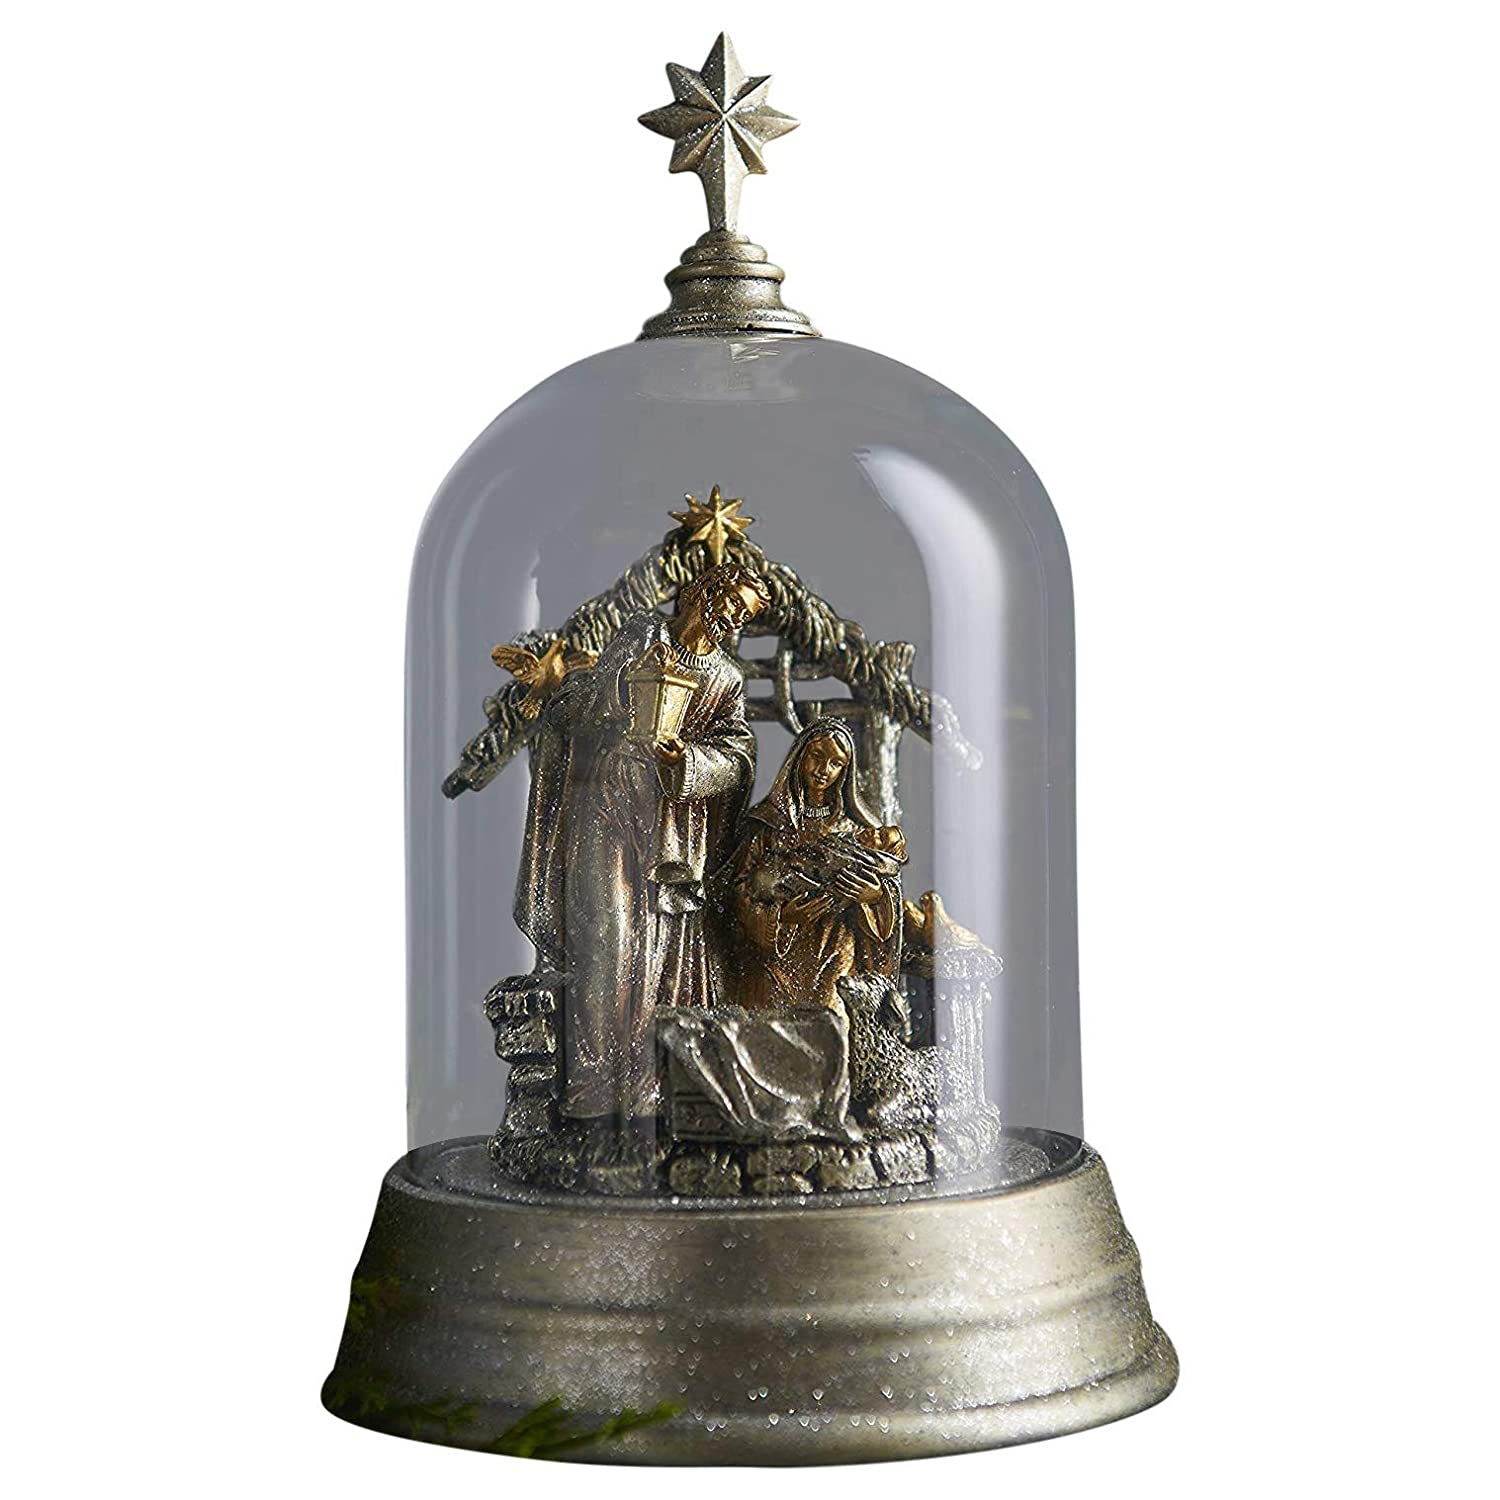 Religious Nativity Scene Set in Enclosed Star-Topped Dome in Platinum and Silver, 9 1/2 Inch Raz Imports